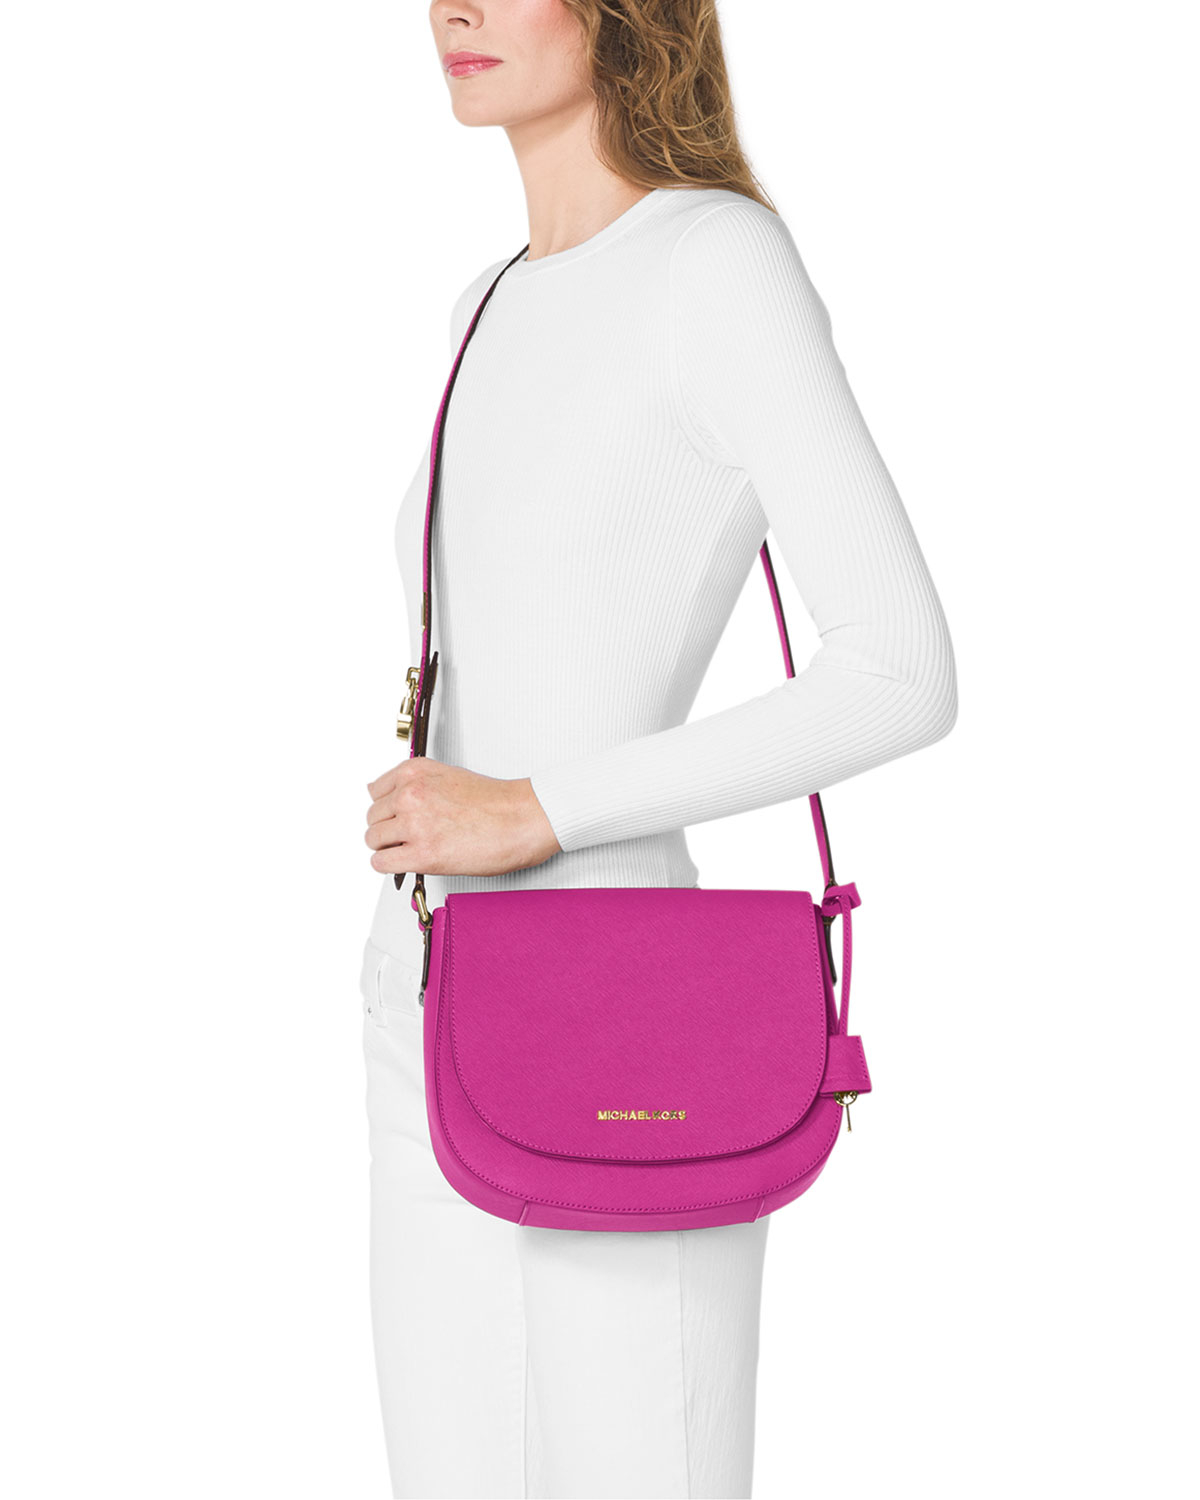 Gallery Previously Sold At Neiman Marcus Women S Michael By Kors Hamilton